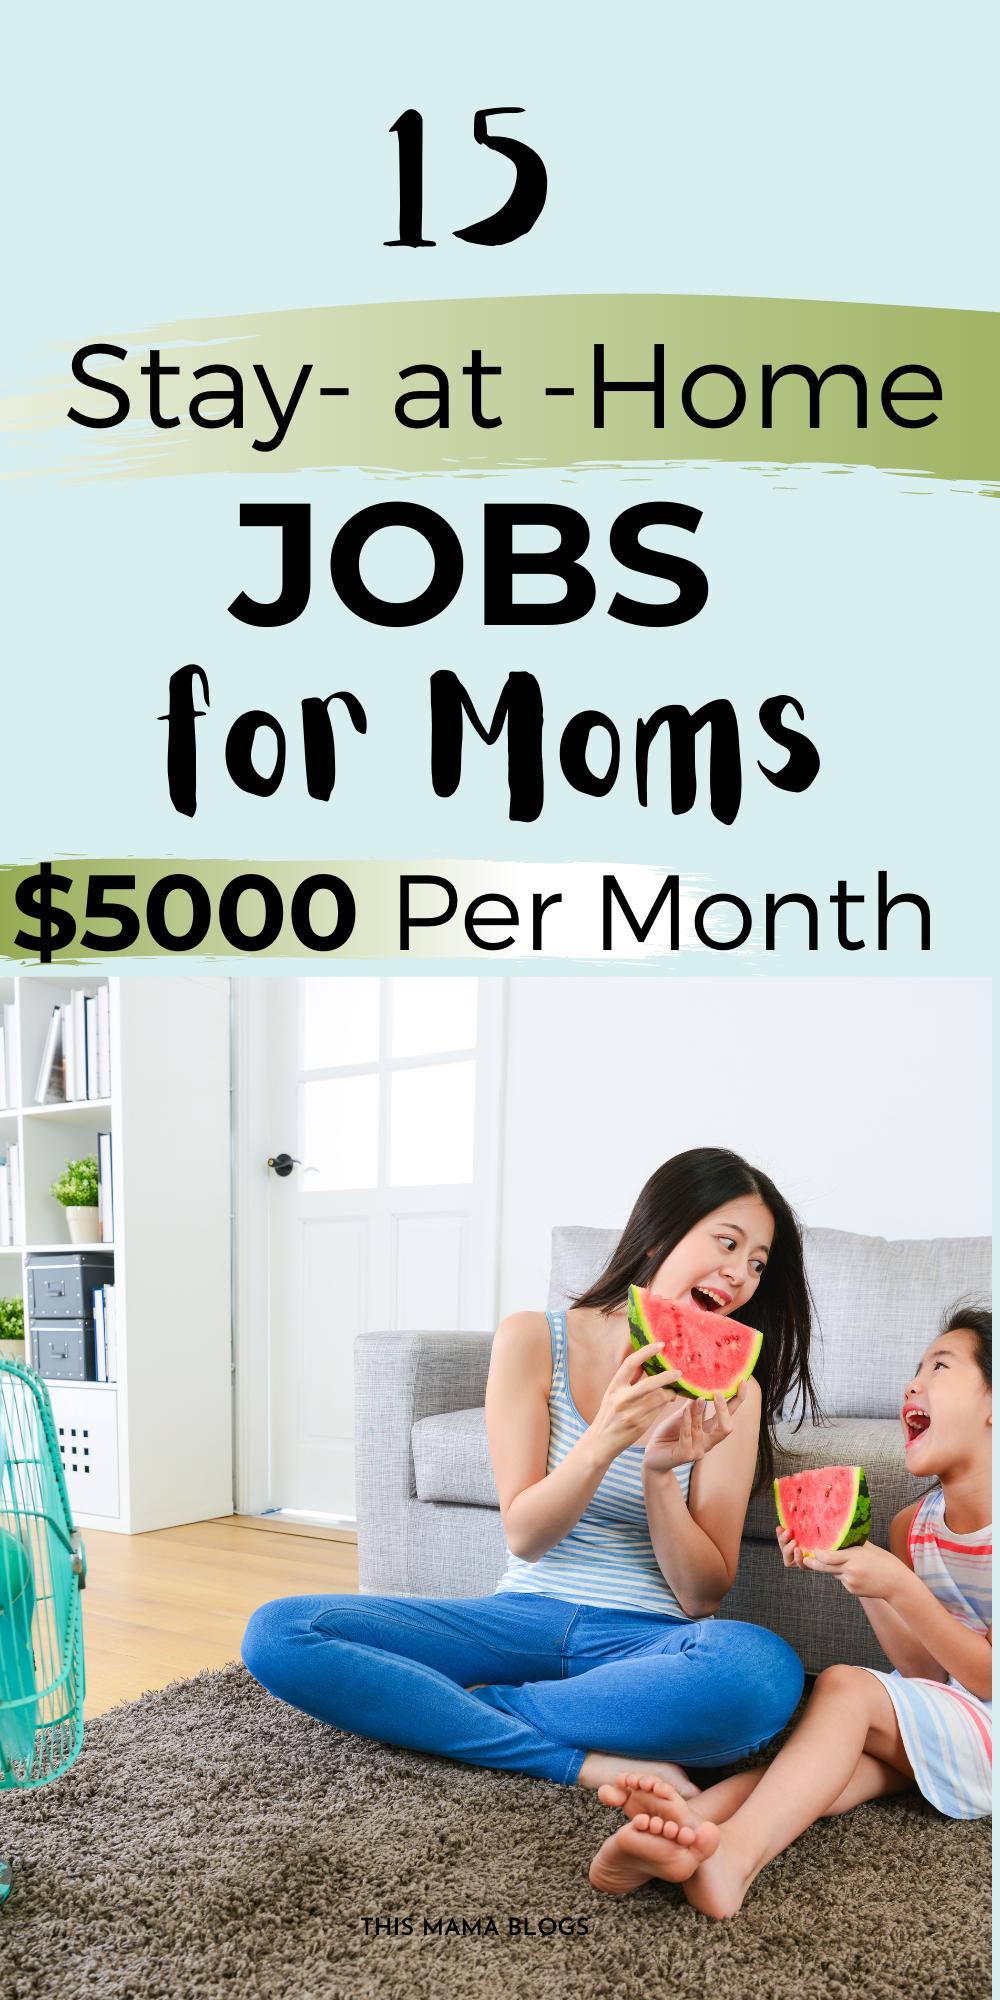 There are lots of stay-at-home mom jobs that pay really well. Want to learn what are the best work at home jobs for moms? Read this post! stay at home mom crafts, stay at home mom jobs online, stay at home mom jobs extra money #workfromhome #makemoneyfromhome #sidehustles #workingmom #stayathomemomjobs #makemoneyonline